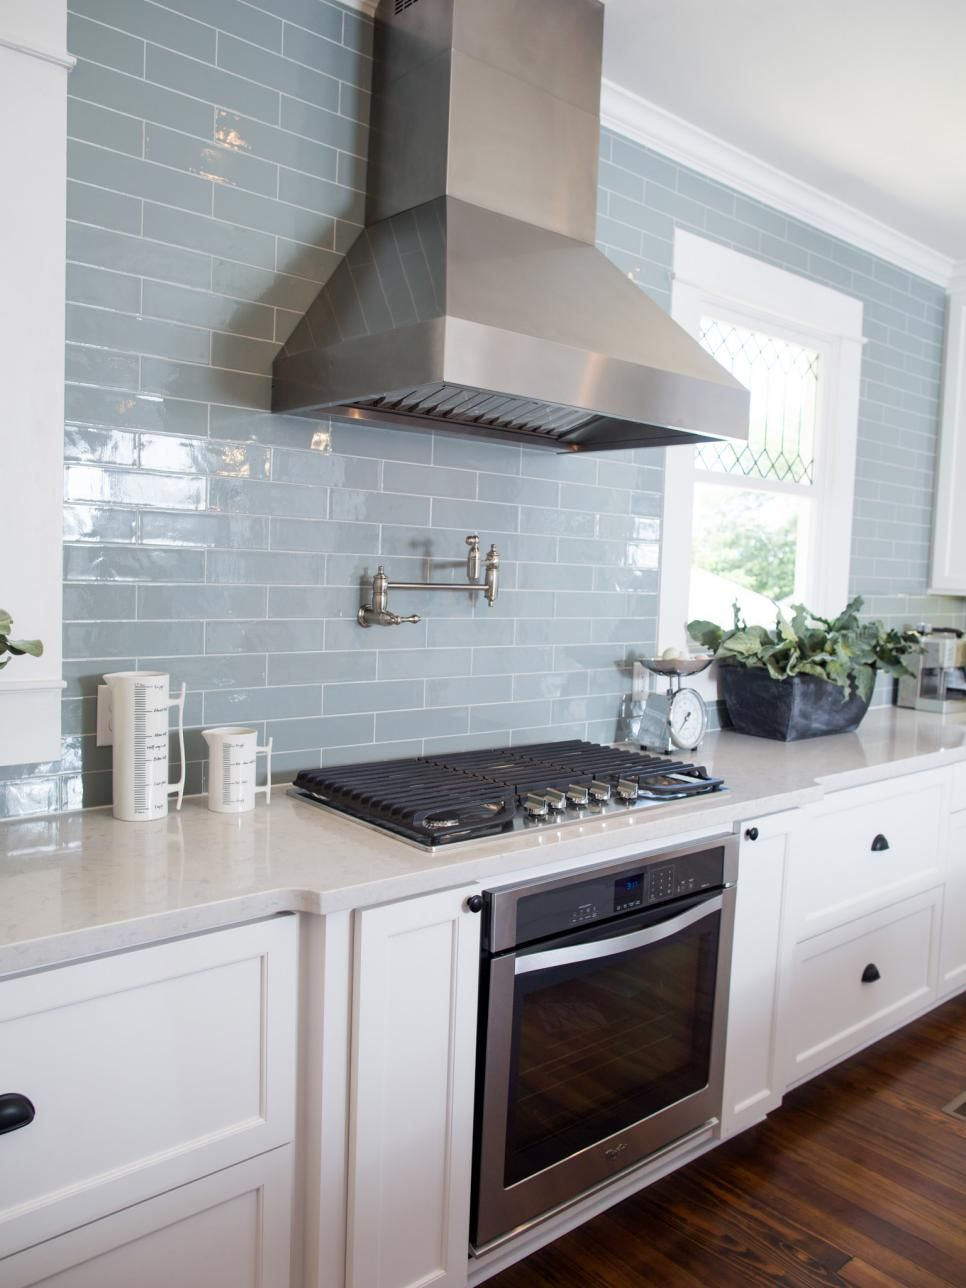 Charmant Other Key Features In The New Kitchen Are Stainless Steel Appliances, Vent  Hood And A Subway Tile Backsplash In Muted Blue U2013 A Favorite Color Of  Homeowner, ...